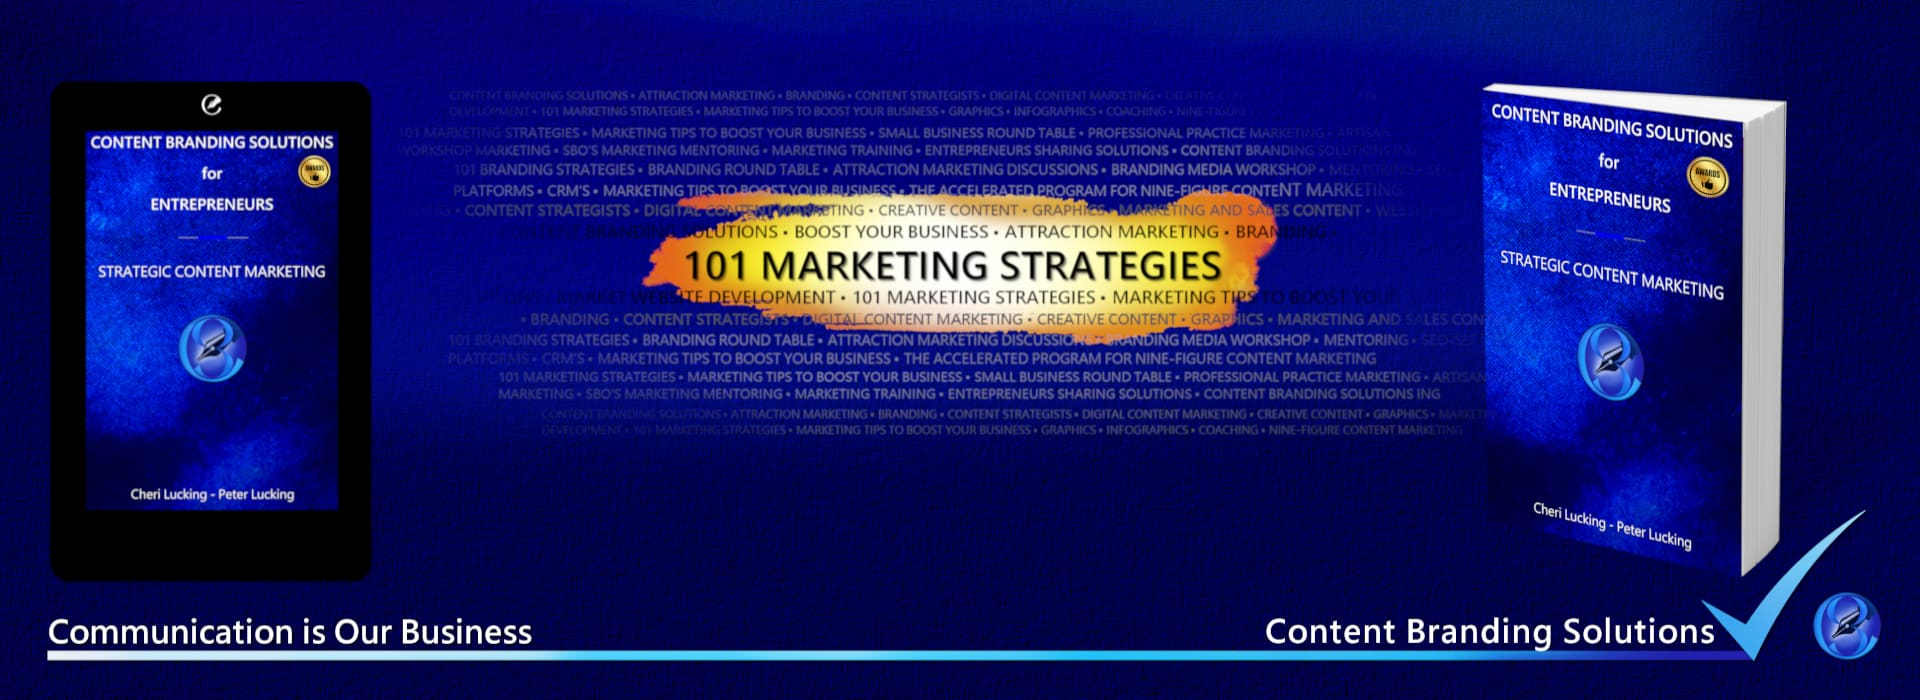 Celebrate #MarketingThursday - Attend our FREE end of month 101 MARKETING STRATEGIES Webinar every last Thursday of the month and plan for success in the weeks ahead. Sign up now Strategies to Boost Your Business from Content Branding Solutions Hosted by Cheri and peter Lucking